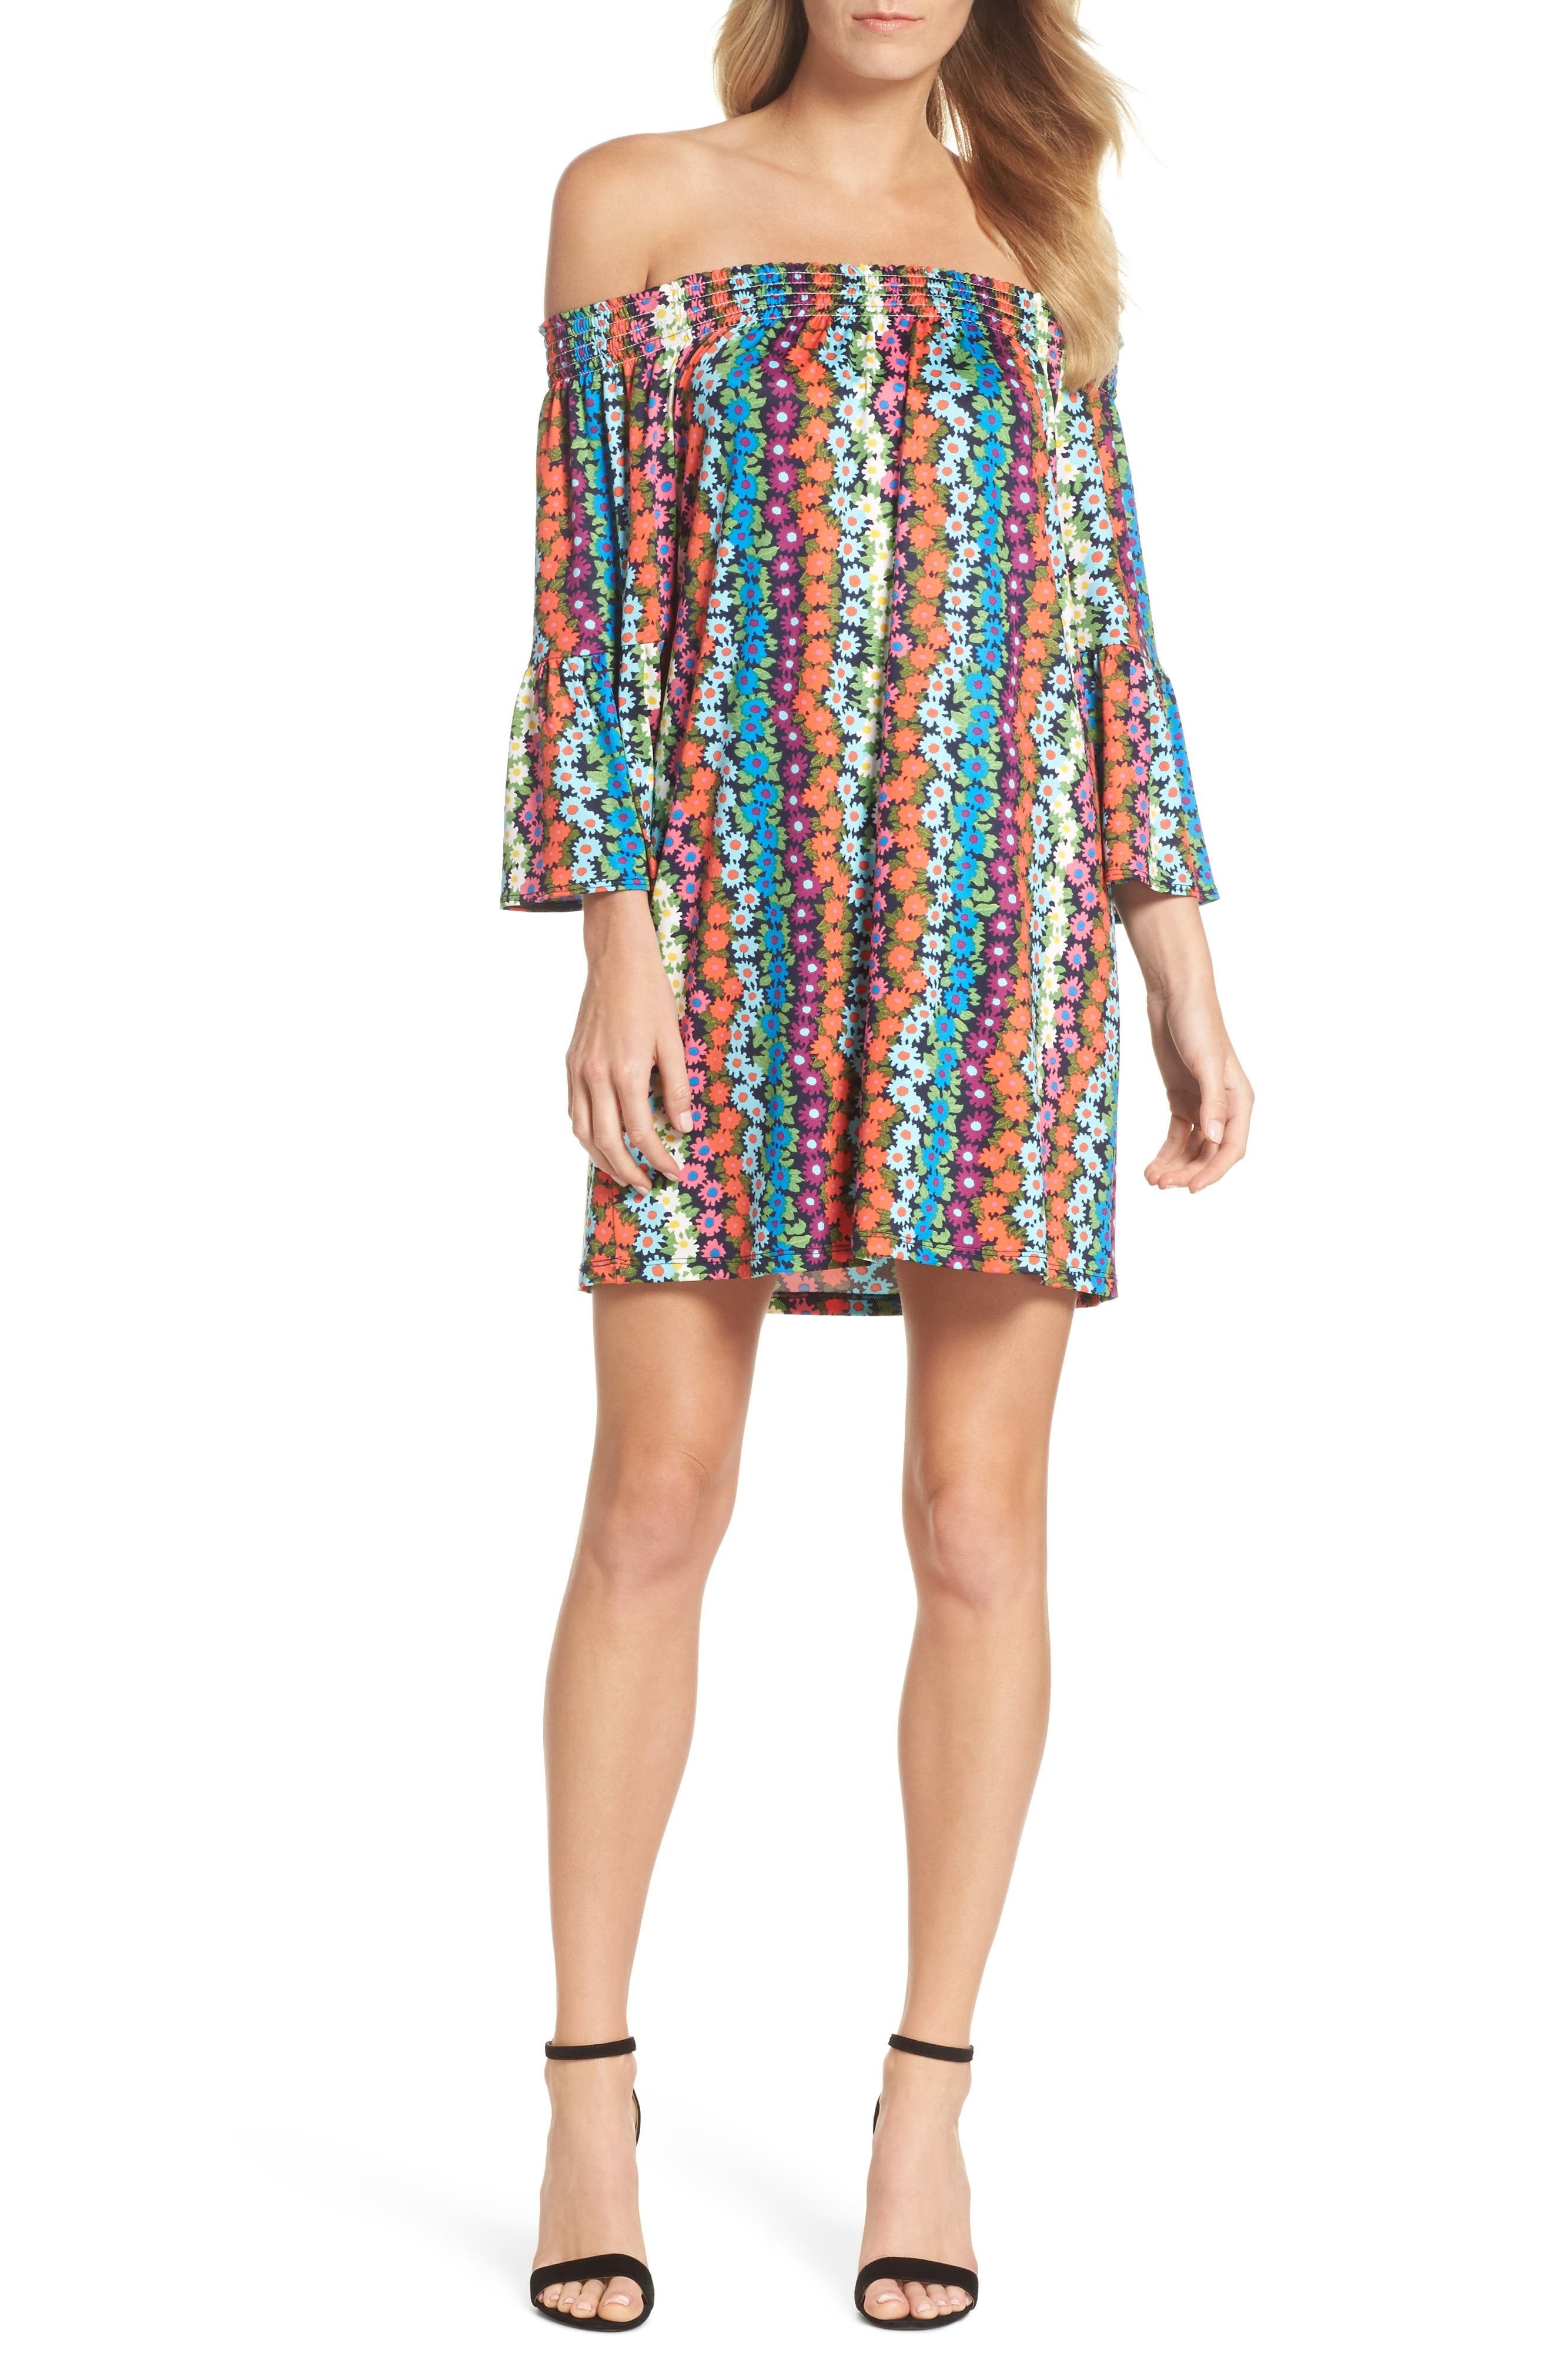 Trina Turk Off the Shoulder Bell Sleeve Dress,                             Main thumbnail 1, color,                             460